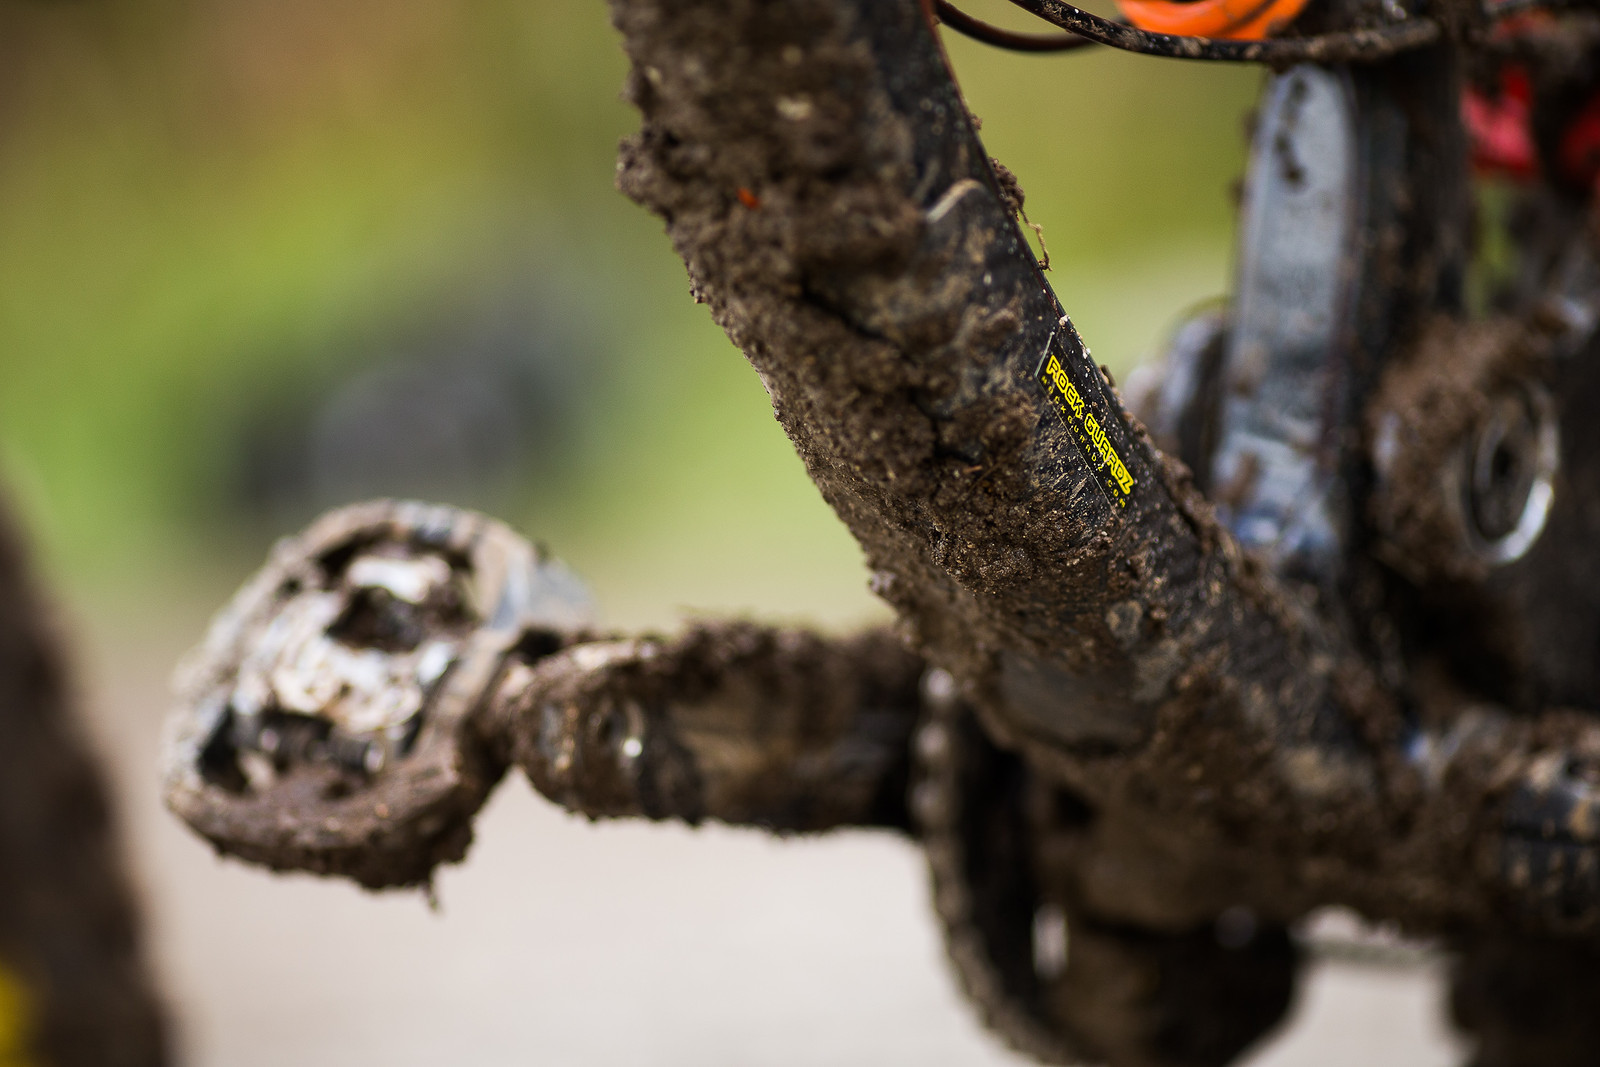 Clipless Pedals Win Medals - WINNING BIKE: Matt Walker's Saracen Myst - Mountain Biking Pictures - Vital MTB